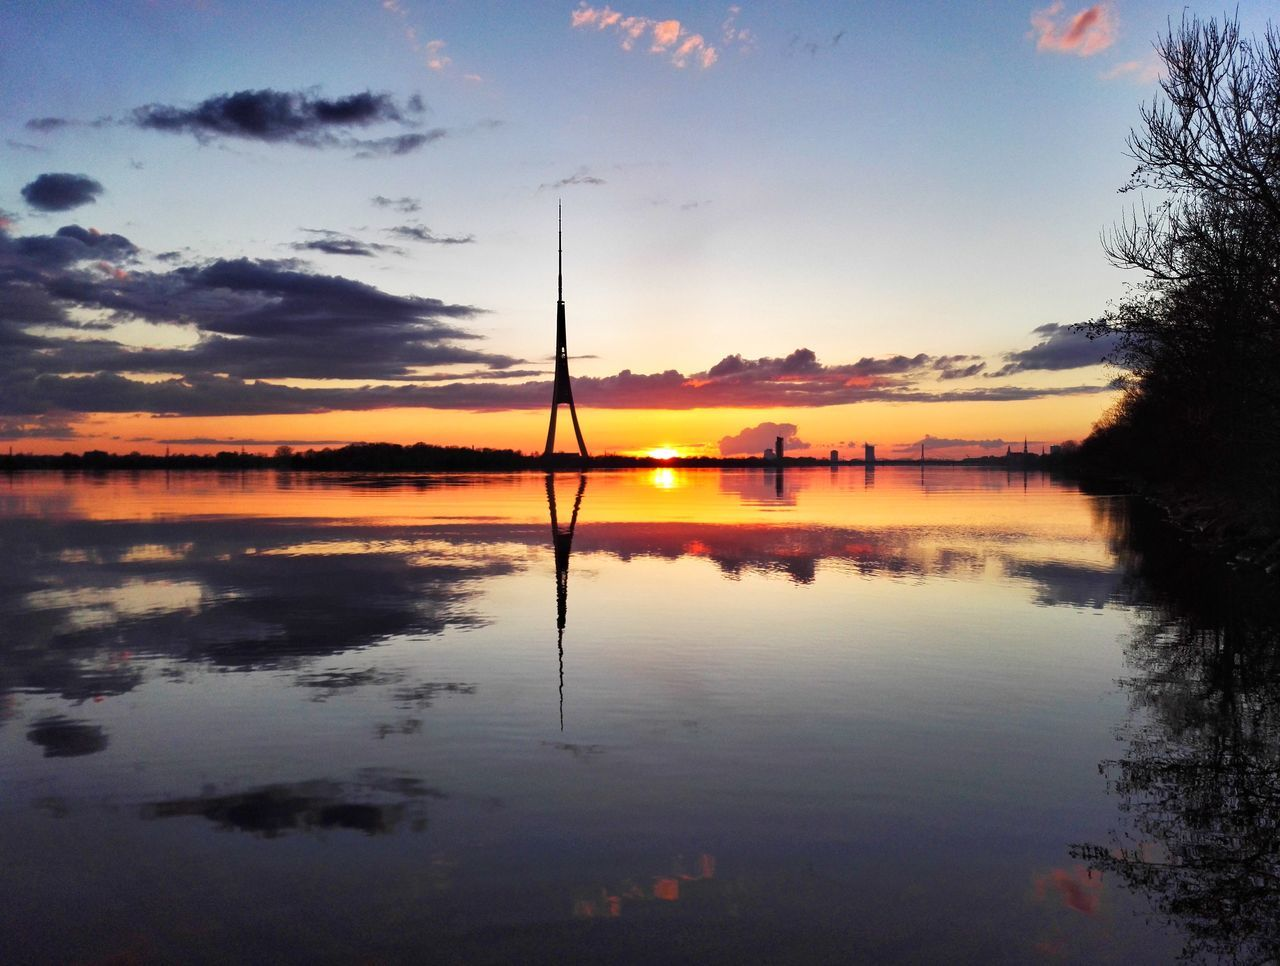 Reflection Sunset Water Sky Nature Beauty In Nature Tranquility Cloud - Sky Landscape Sunset_collection Water_collection Sky_collection River City Horizon Over Water Scenics